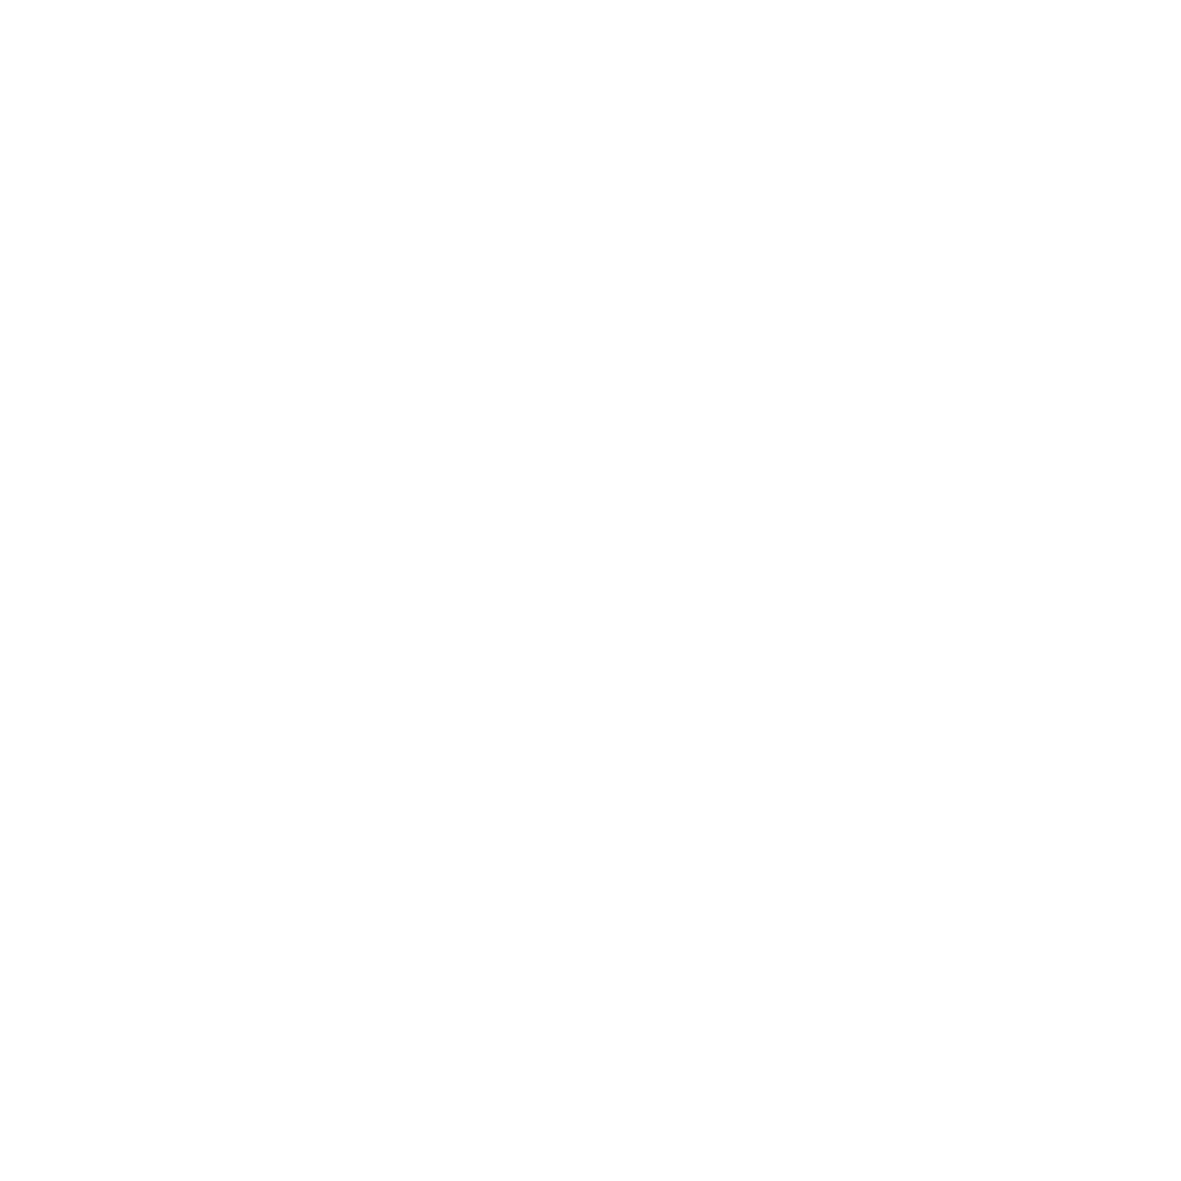 Bashall Barn Weddings